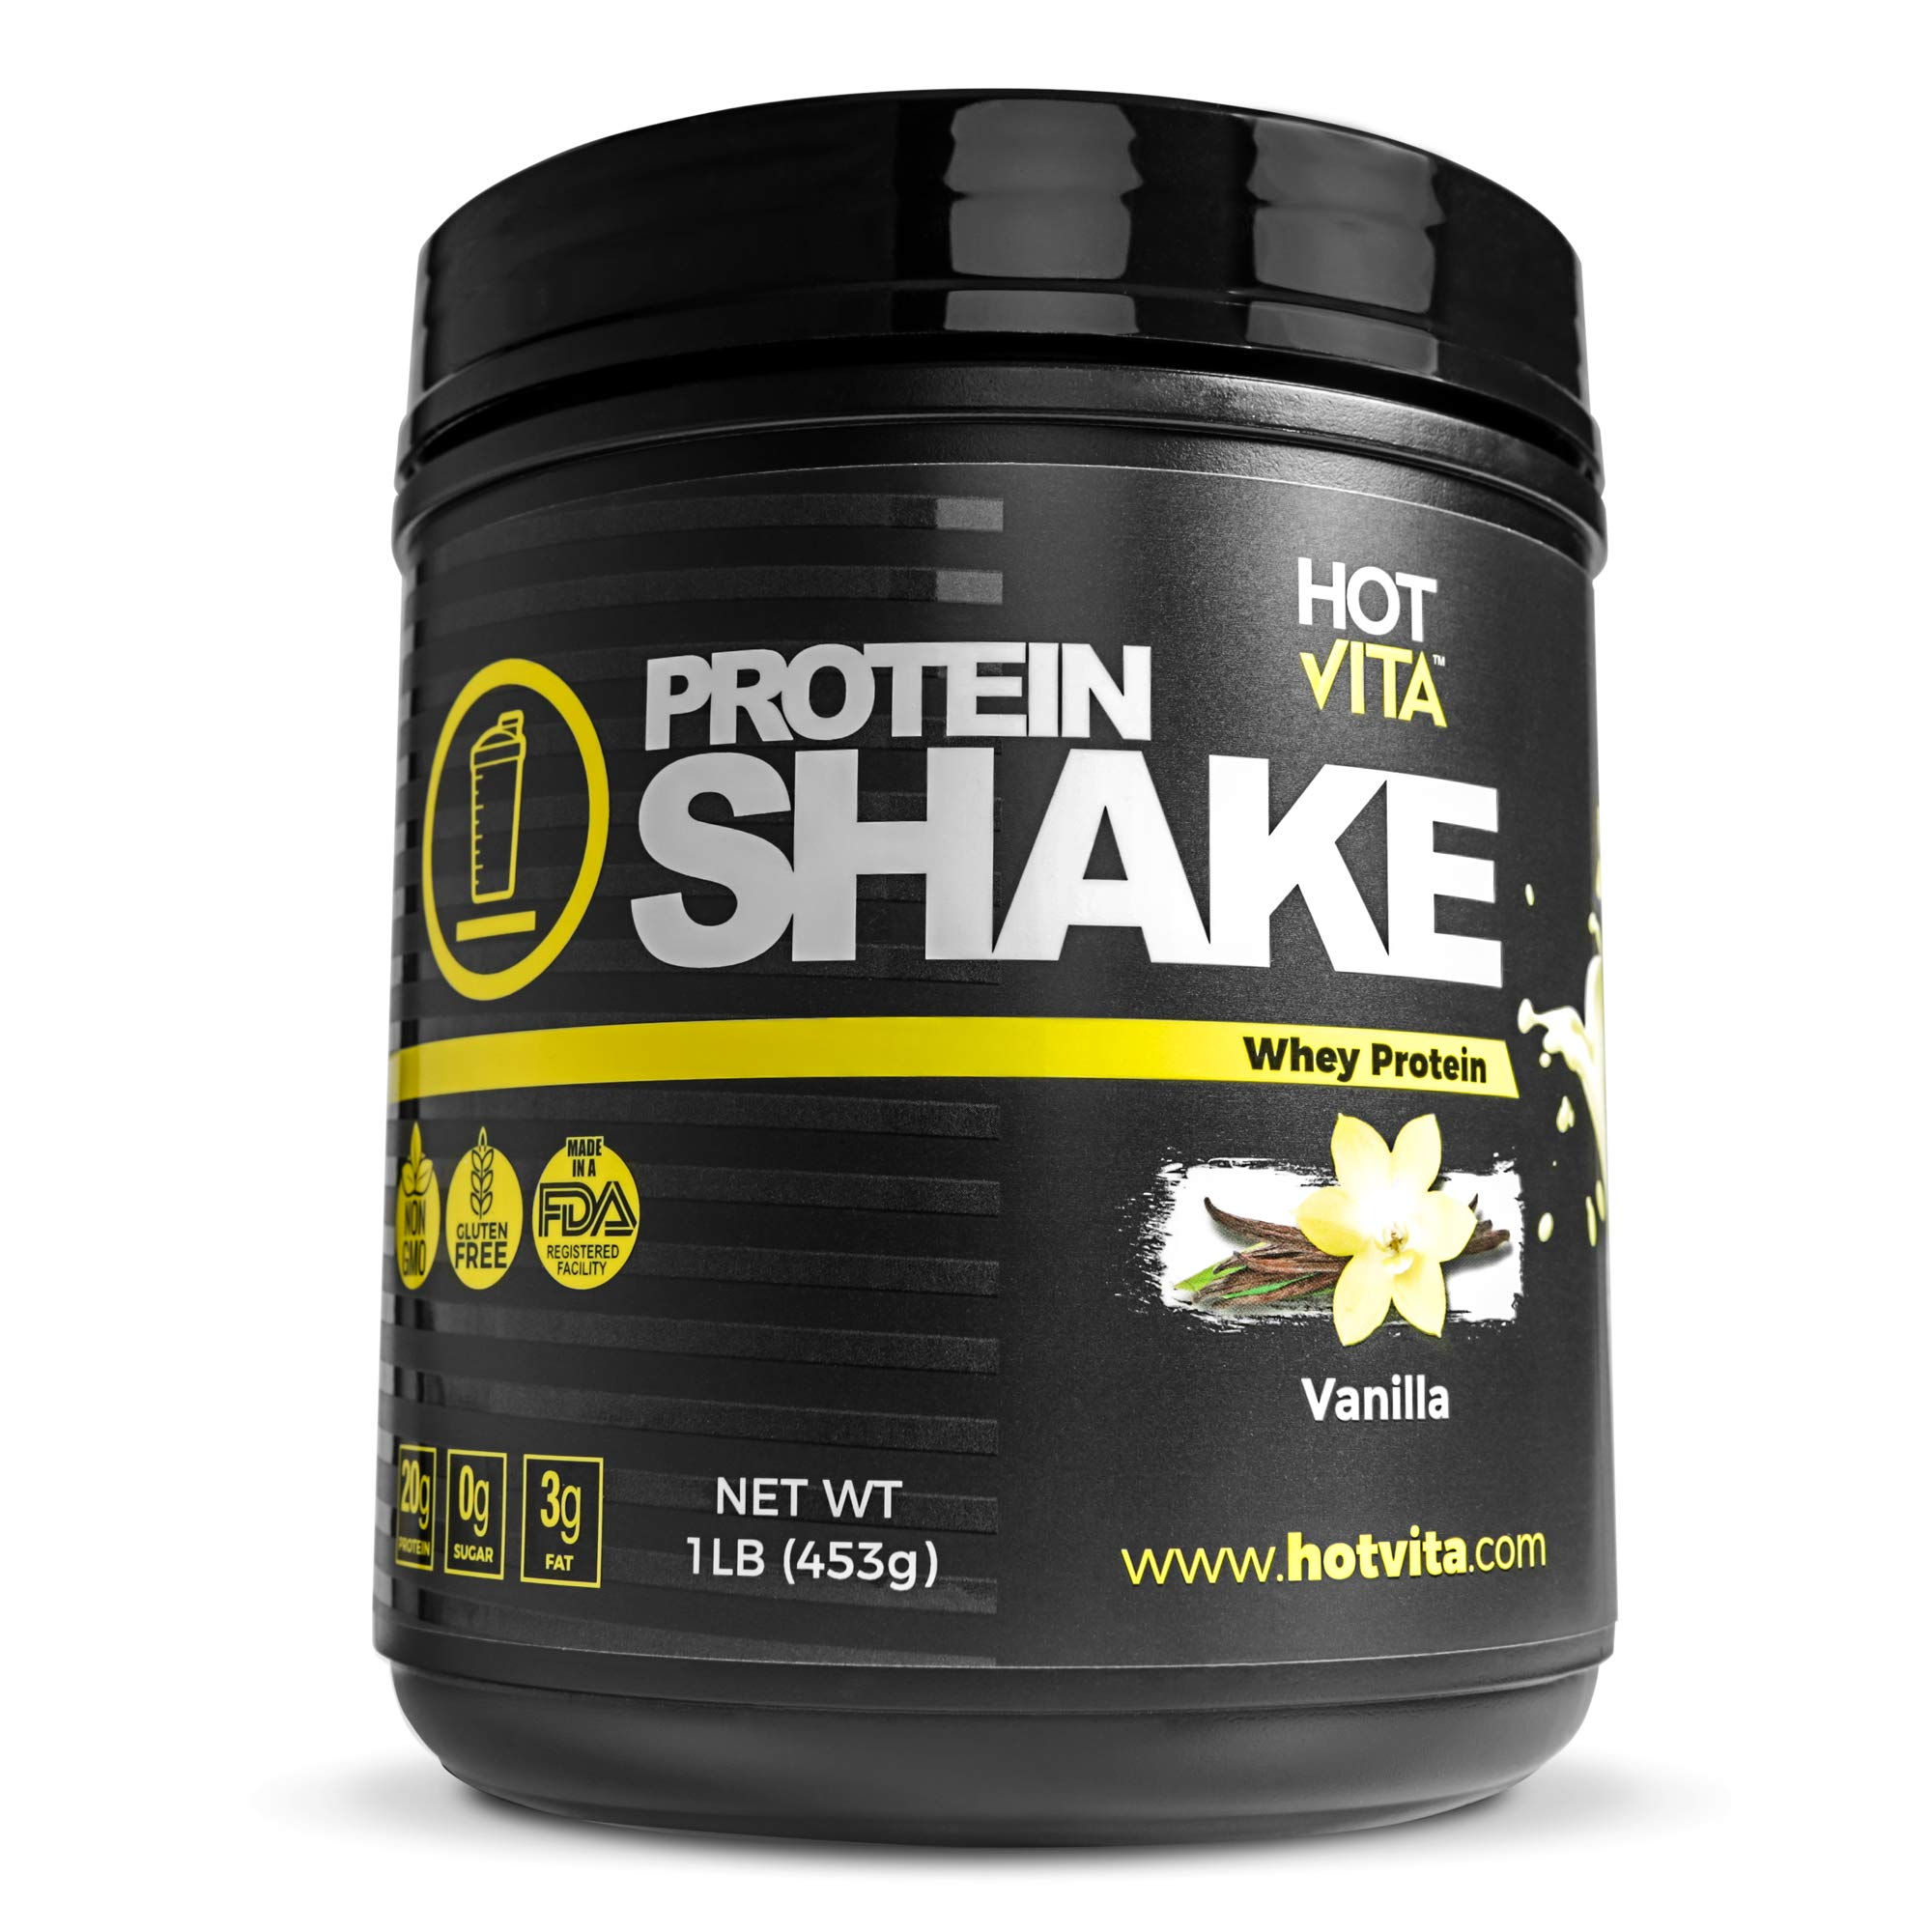 Hot Vita Meal Replacement Protein Shakes for Women - Gluten Free, Non-GMO, Meal Replacement Protein Powder for Weight Loss (Vanilla) by Hot Vita